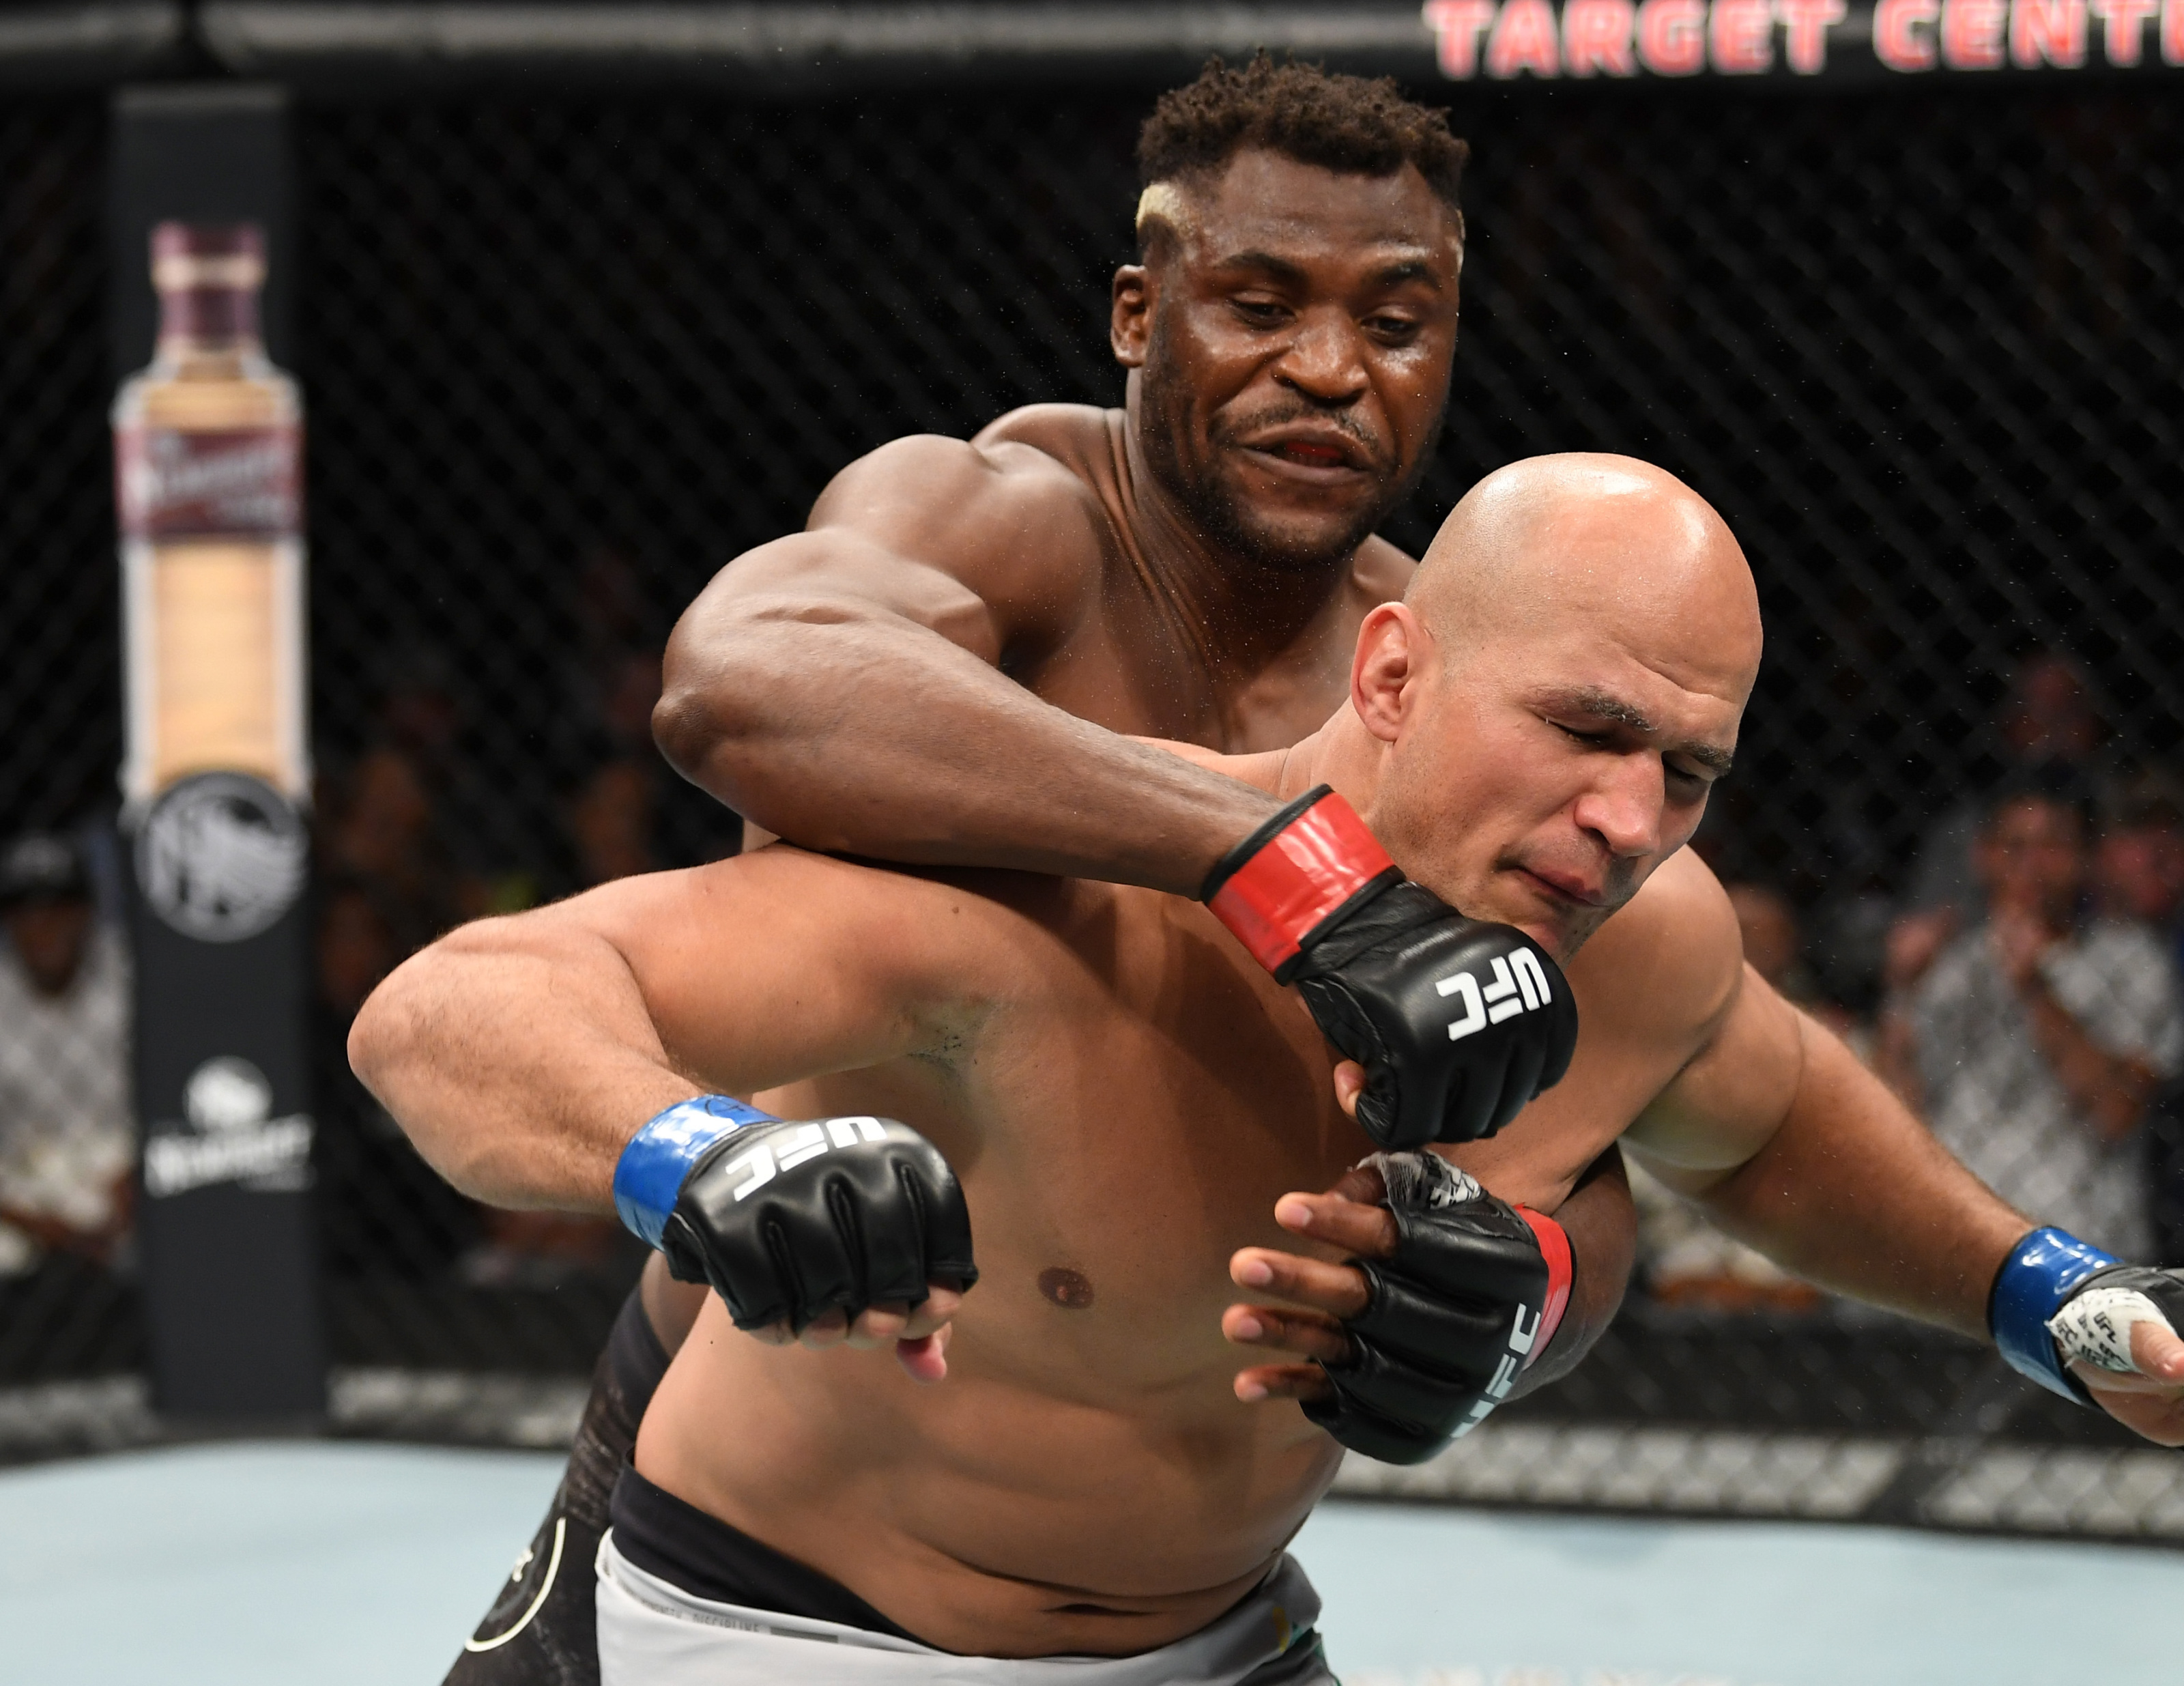 UFC Minneapolis: Twitter reacts to Francis Ngannou's quick knockout of Junior Dos Santos